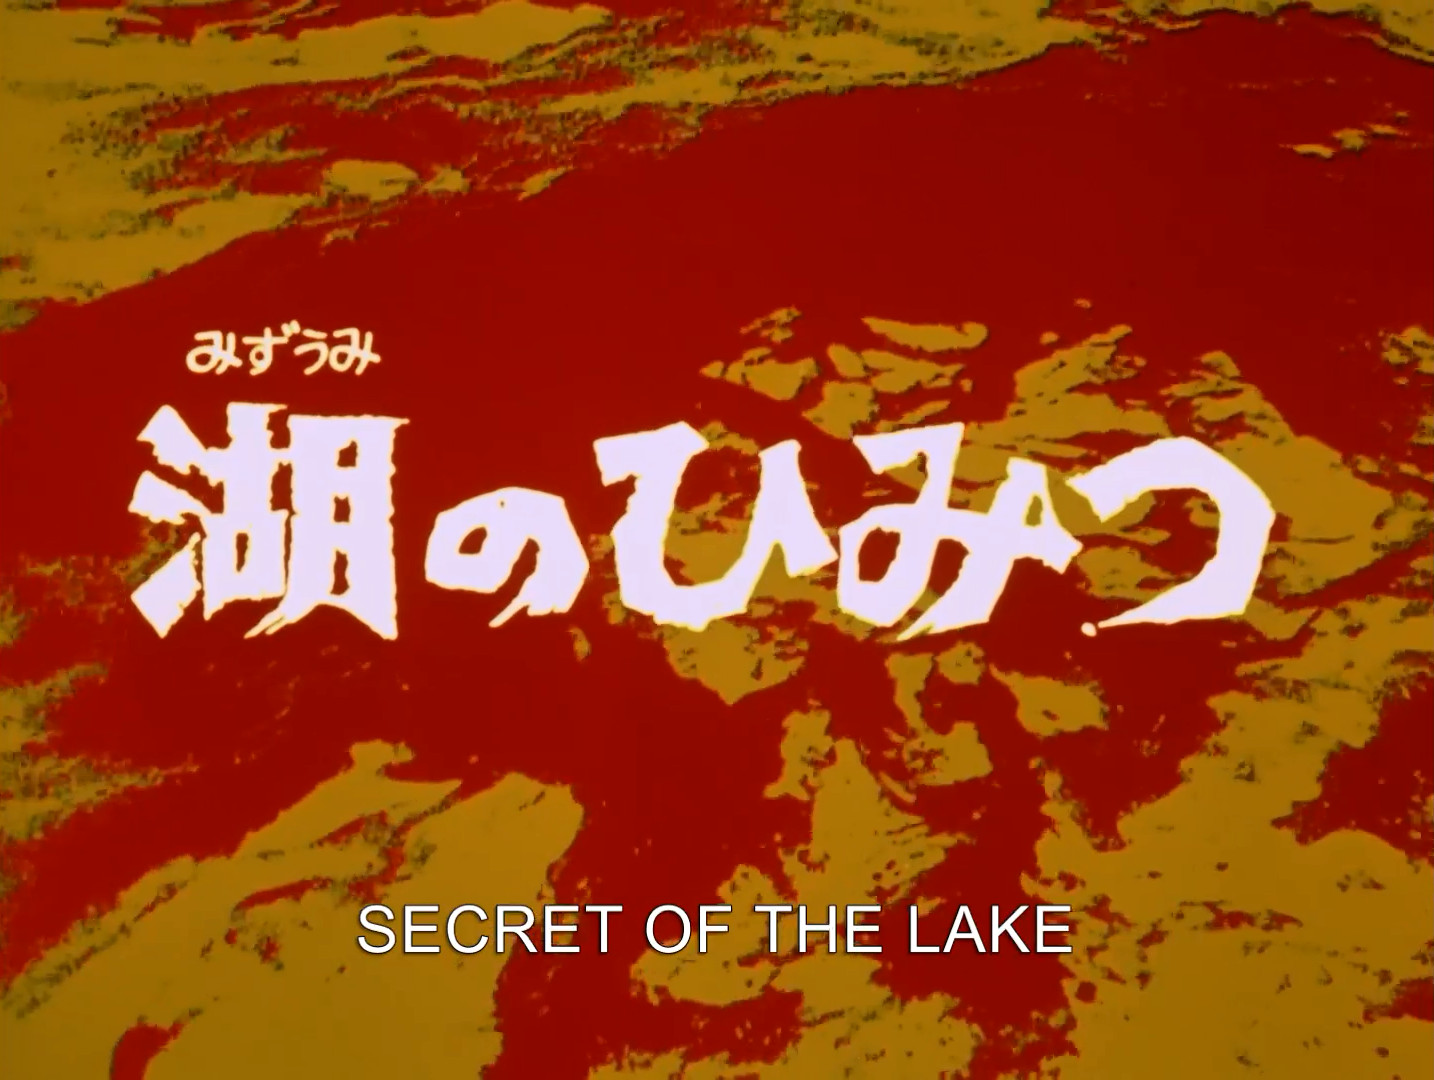 The Secret of the Lake